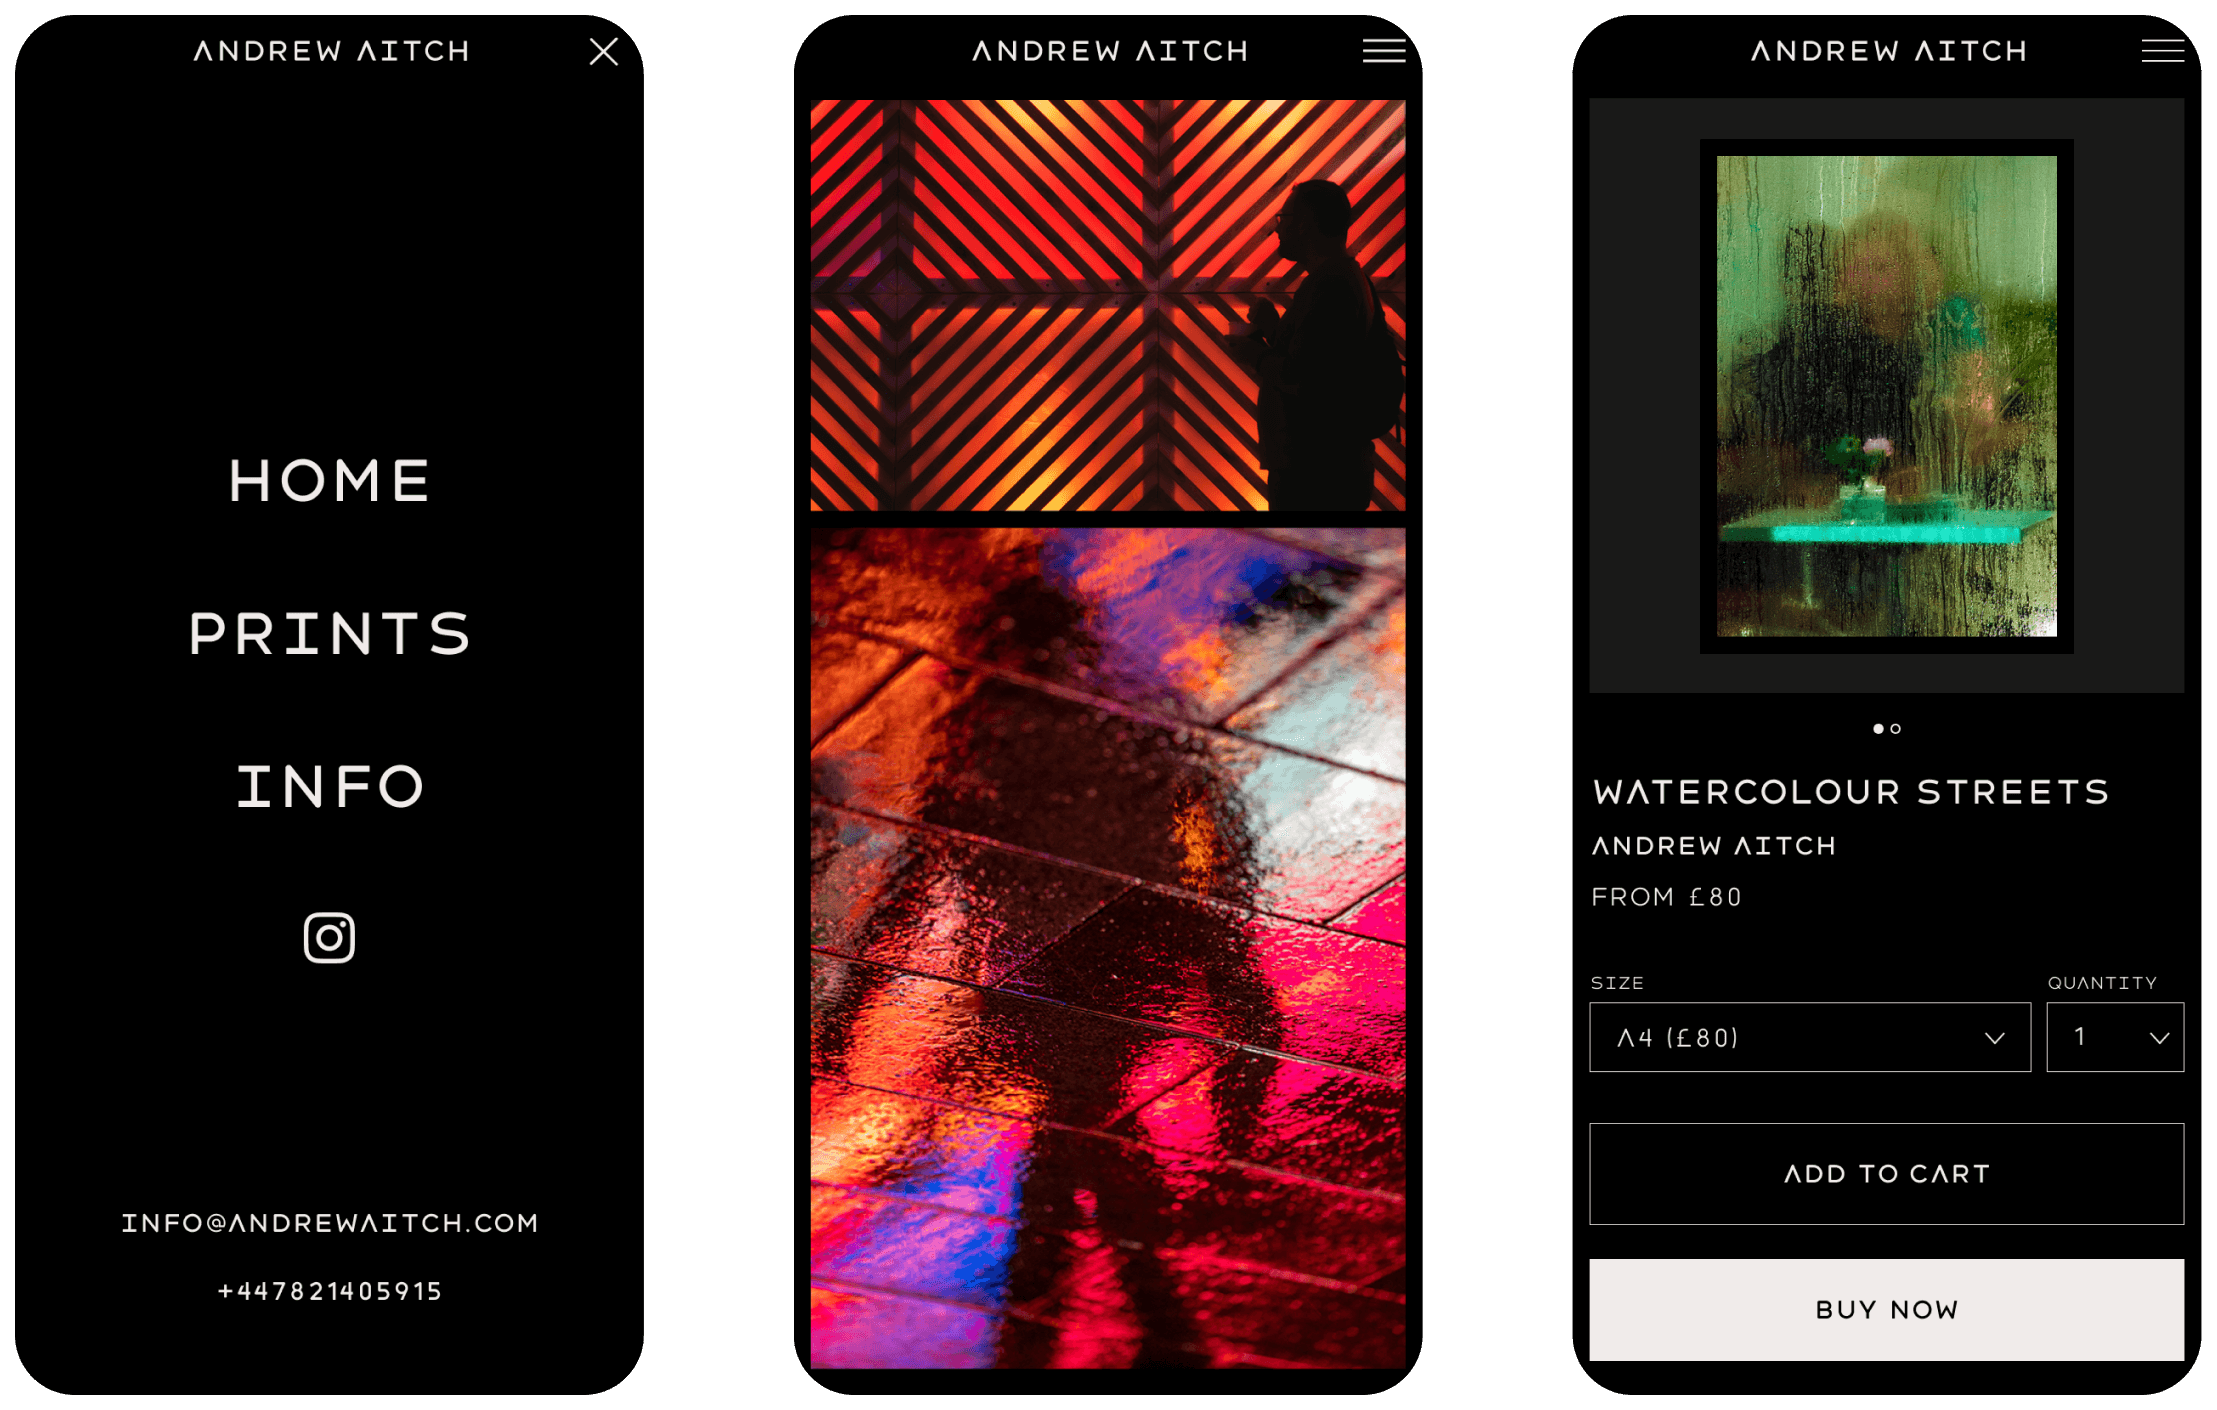 Mobile site design for Andrew Aitch - Challenger brand for Photography Business